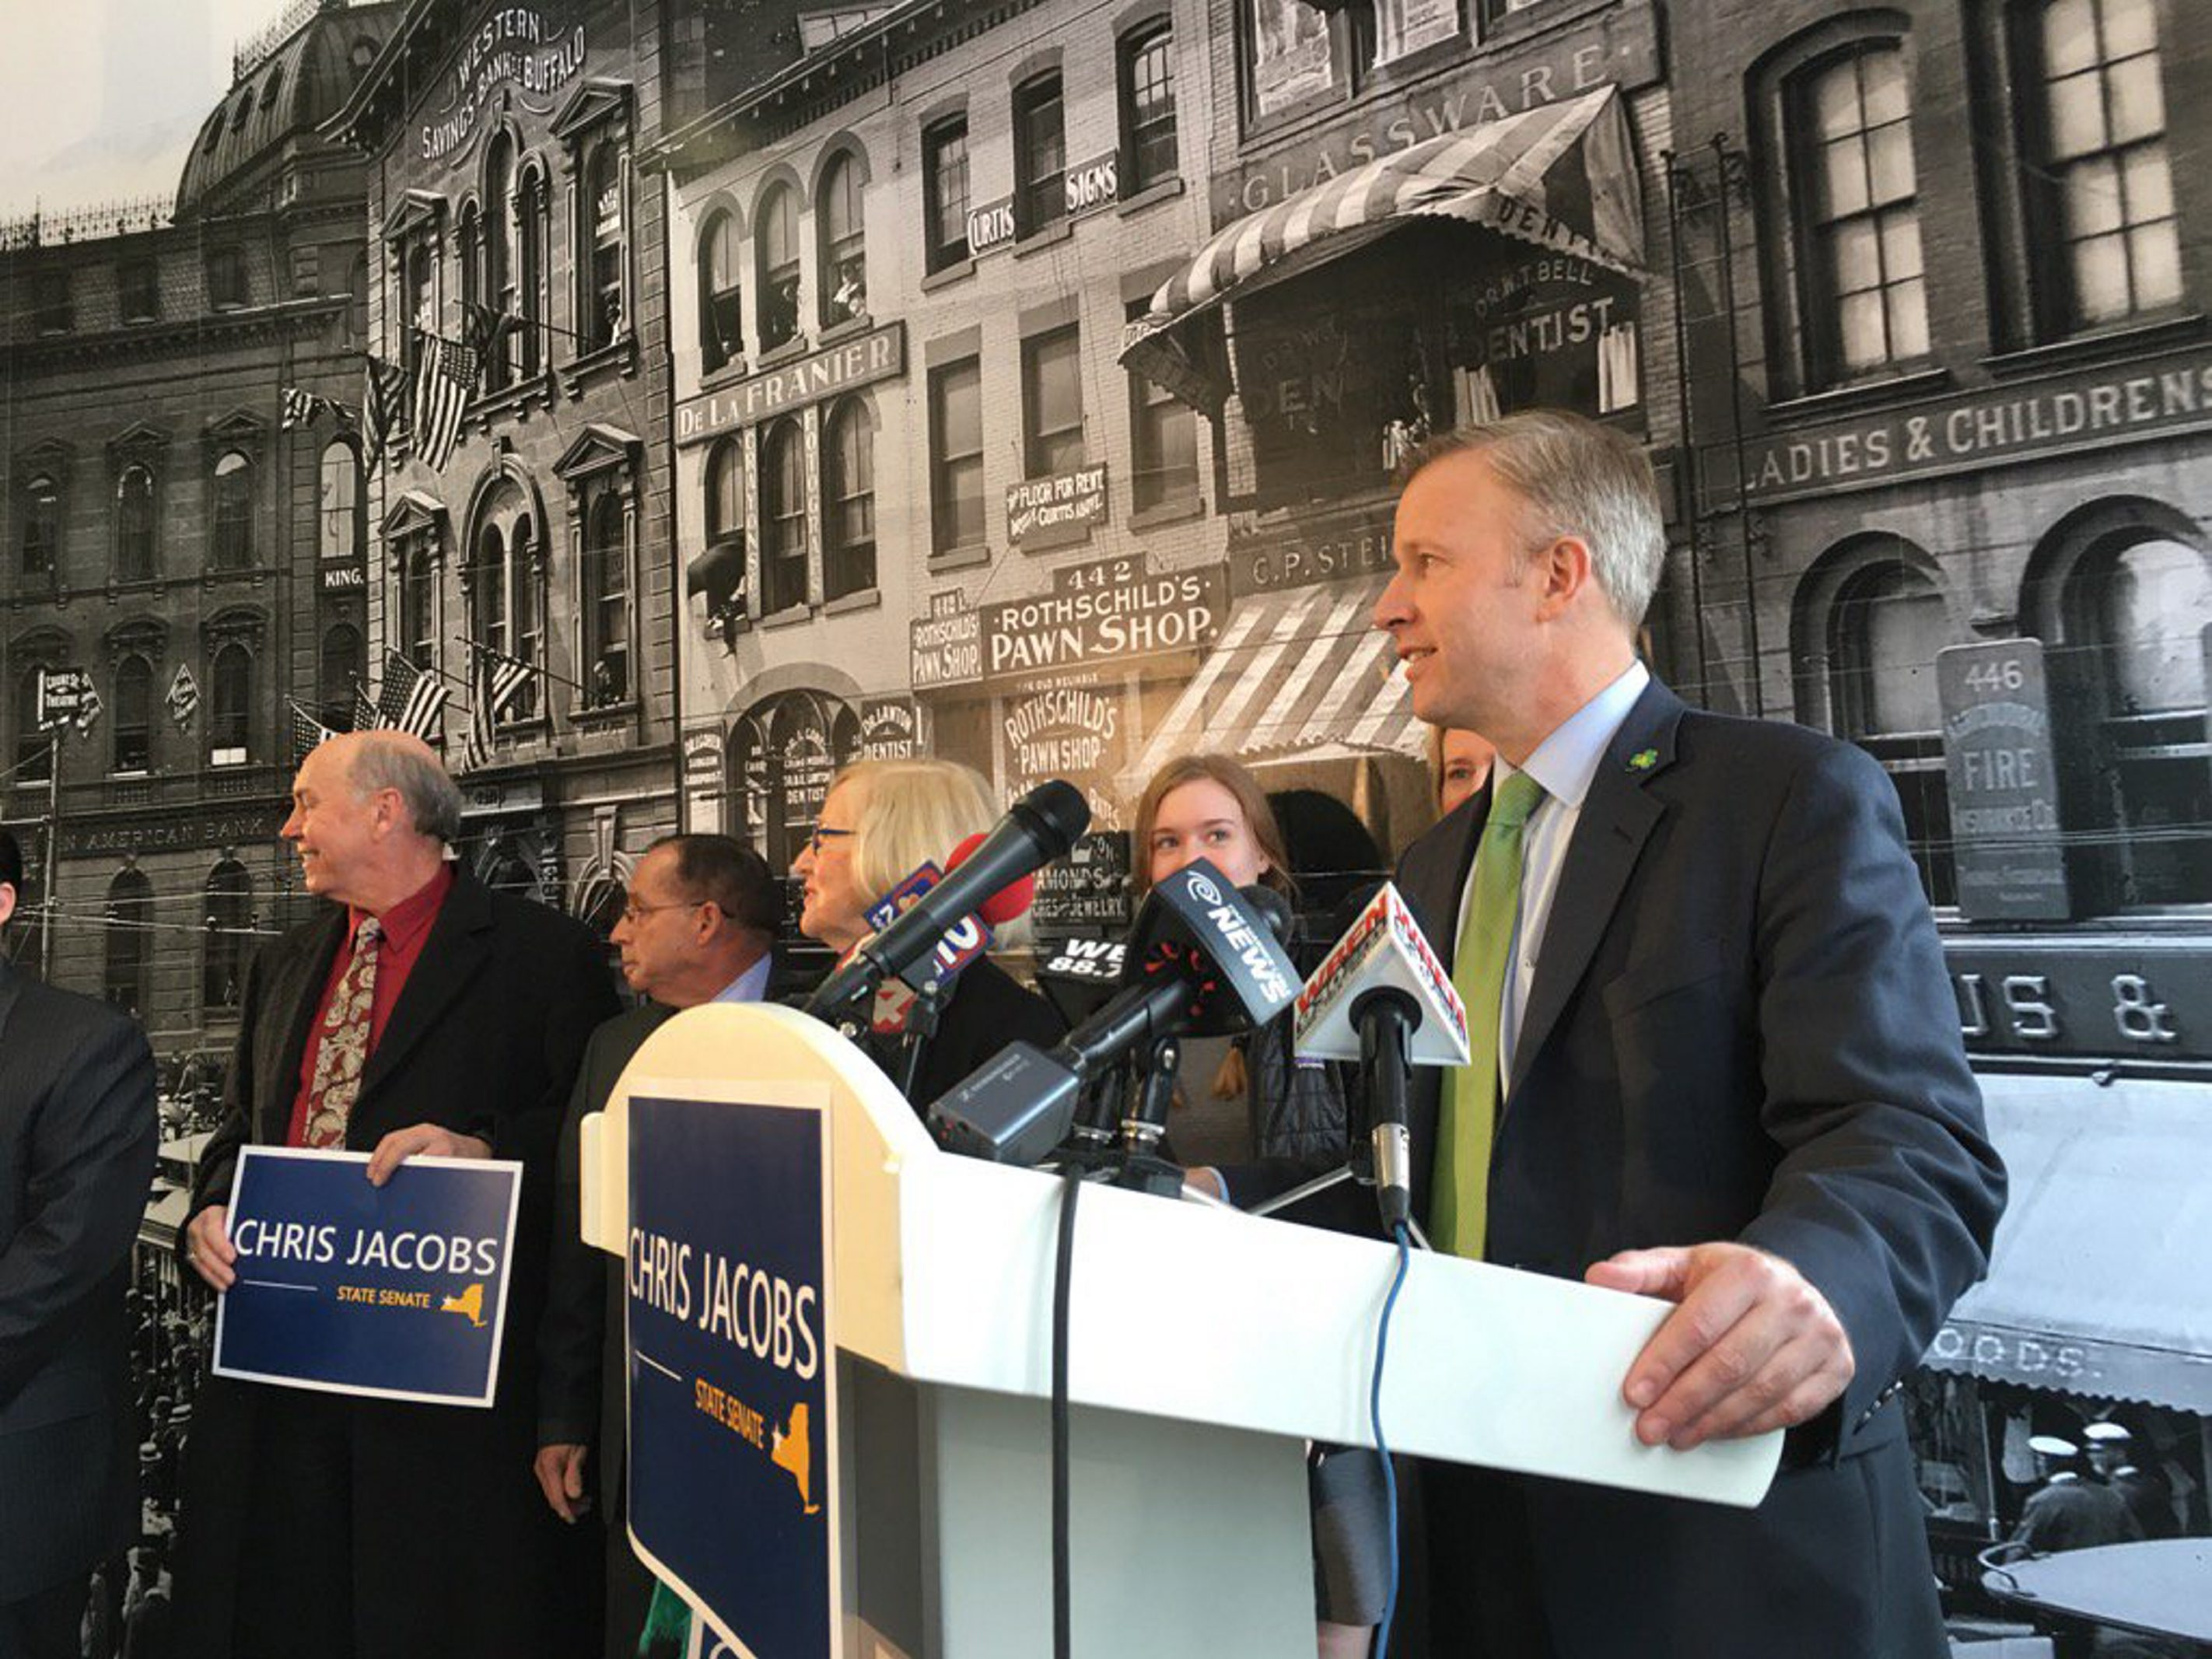 Erie County Clerk Chris Jacobs announces he will seek the Republican nomination in the 60th District State Senate race. (Derek Gee/Buffalo News)